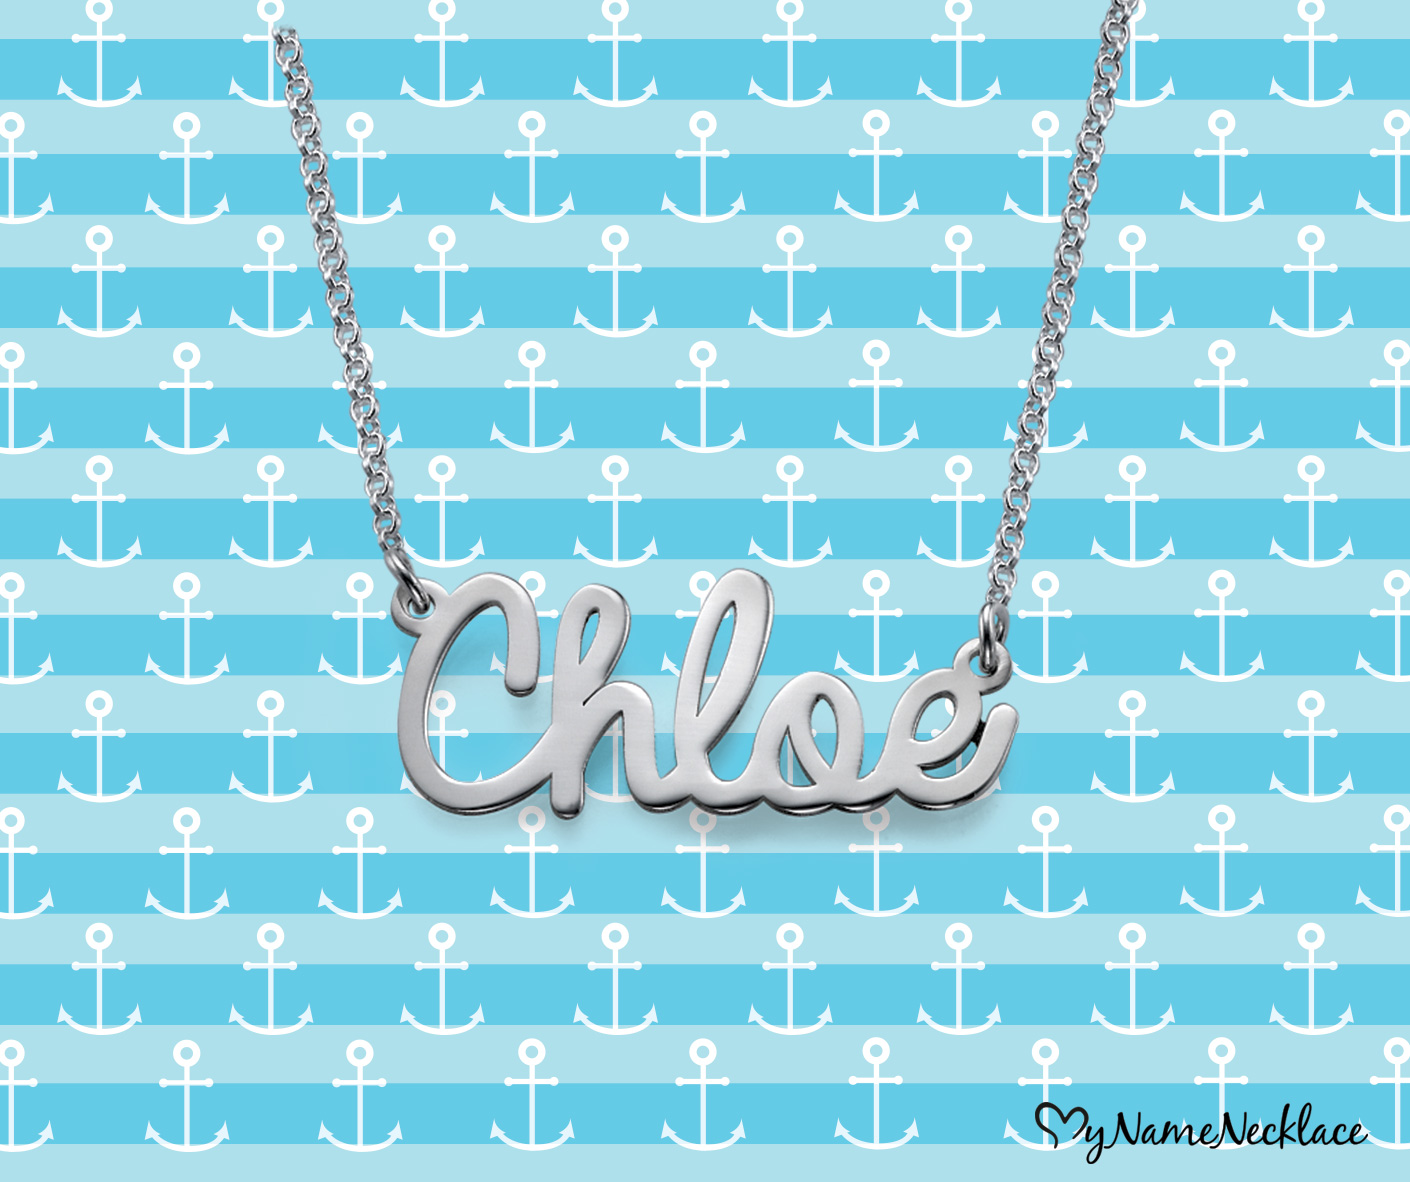 Personalized Jewelry - Cursive Name Necklace